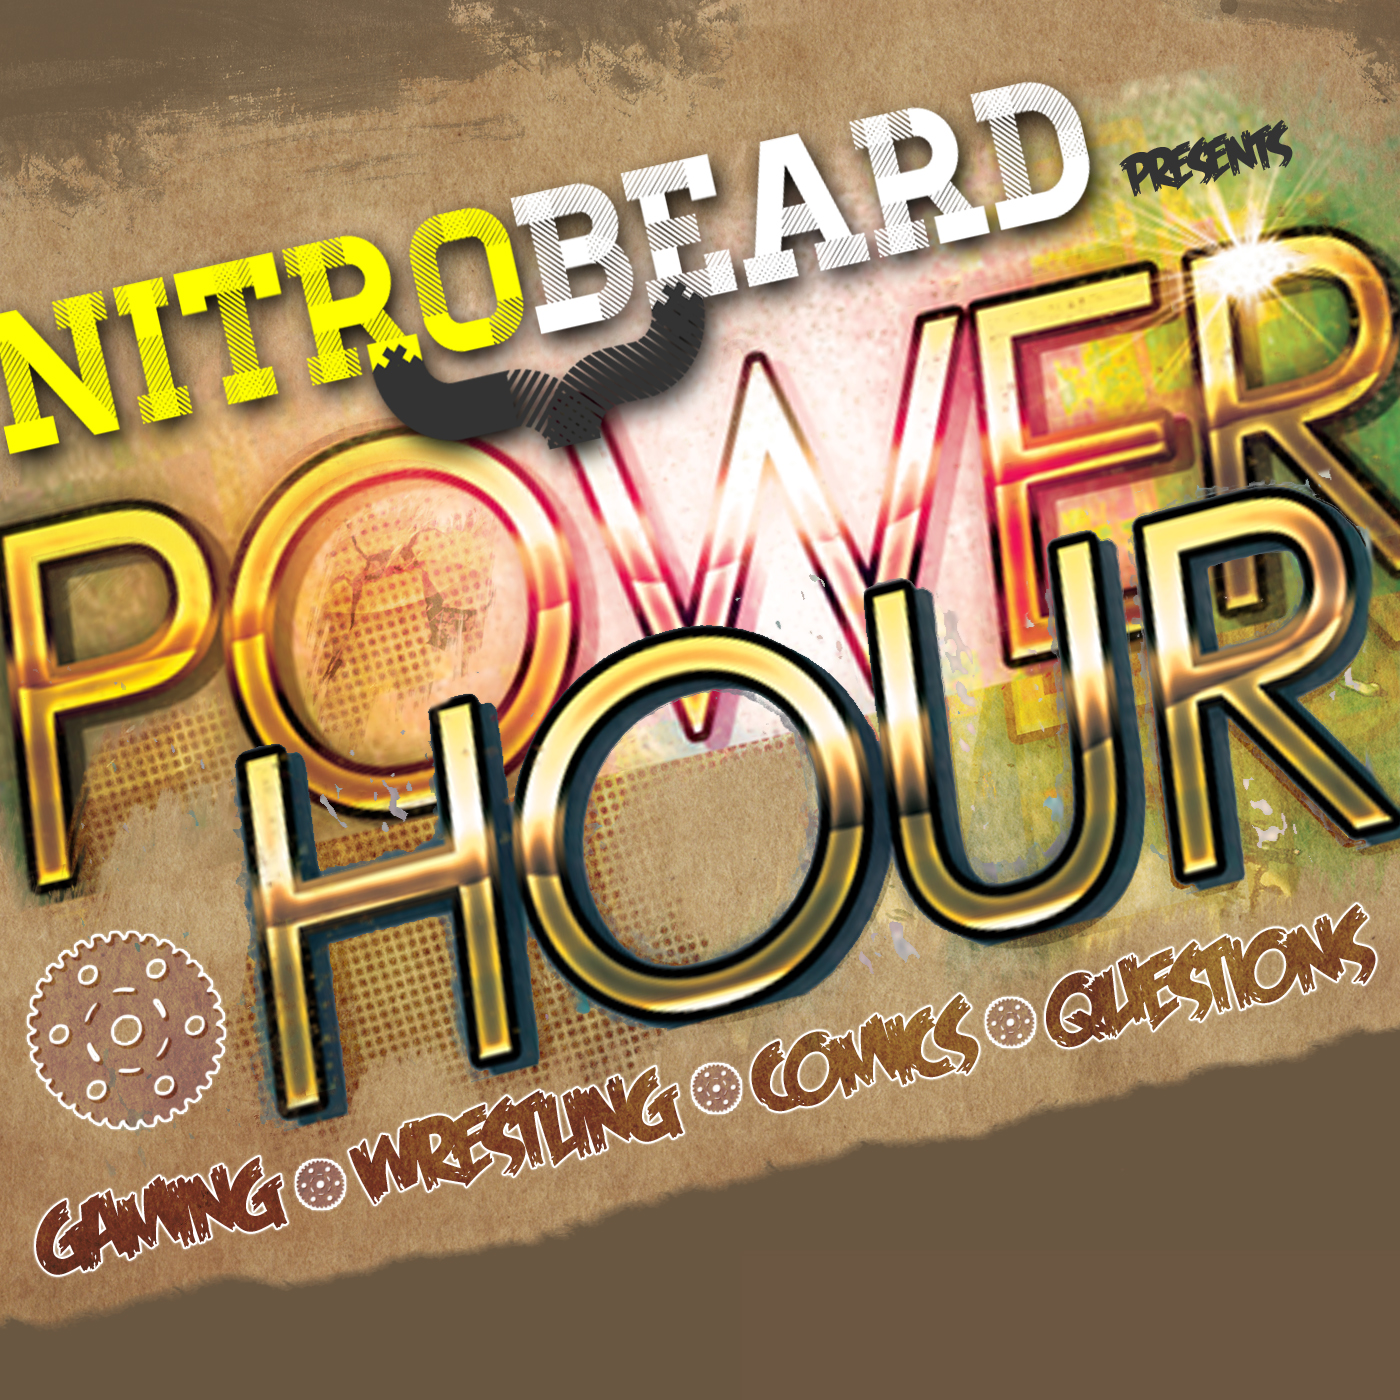 Power Hour - Nitrobeard